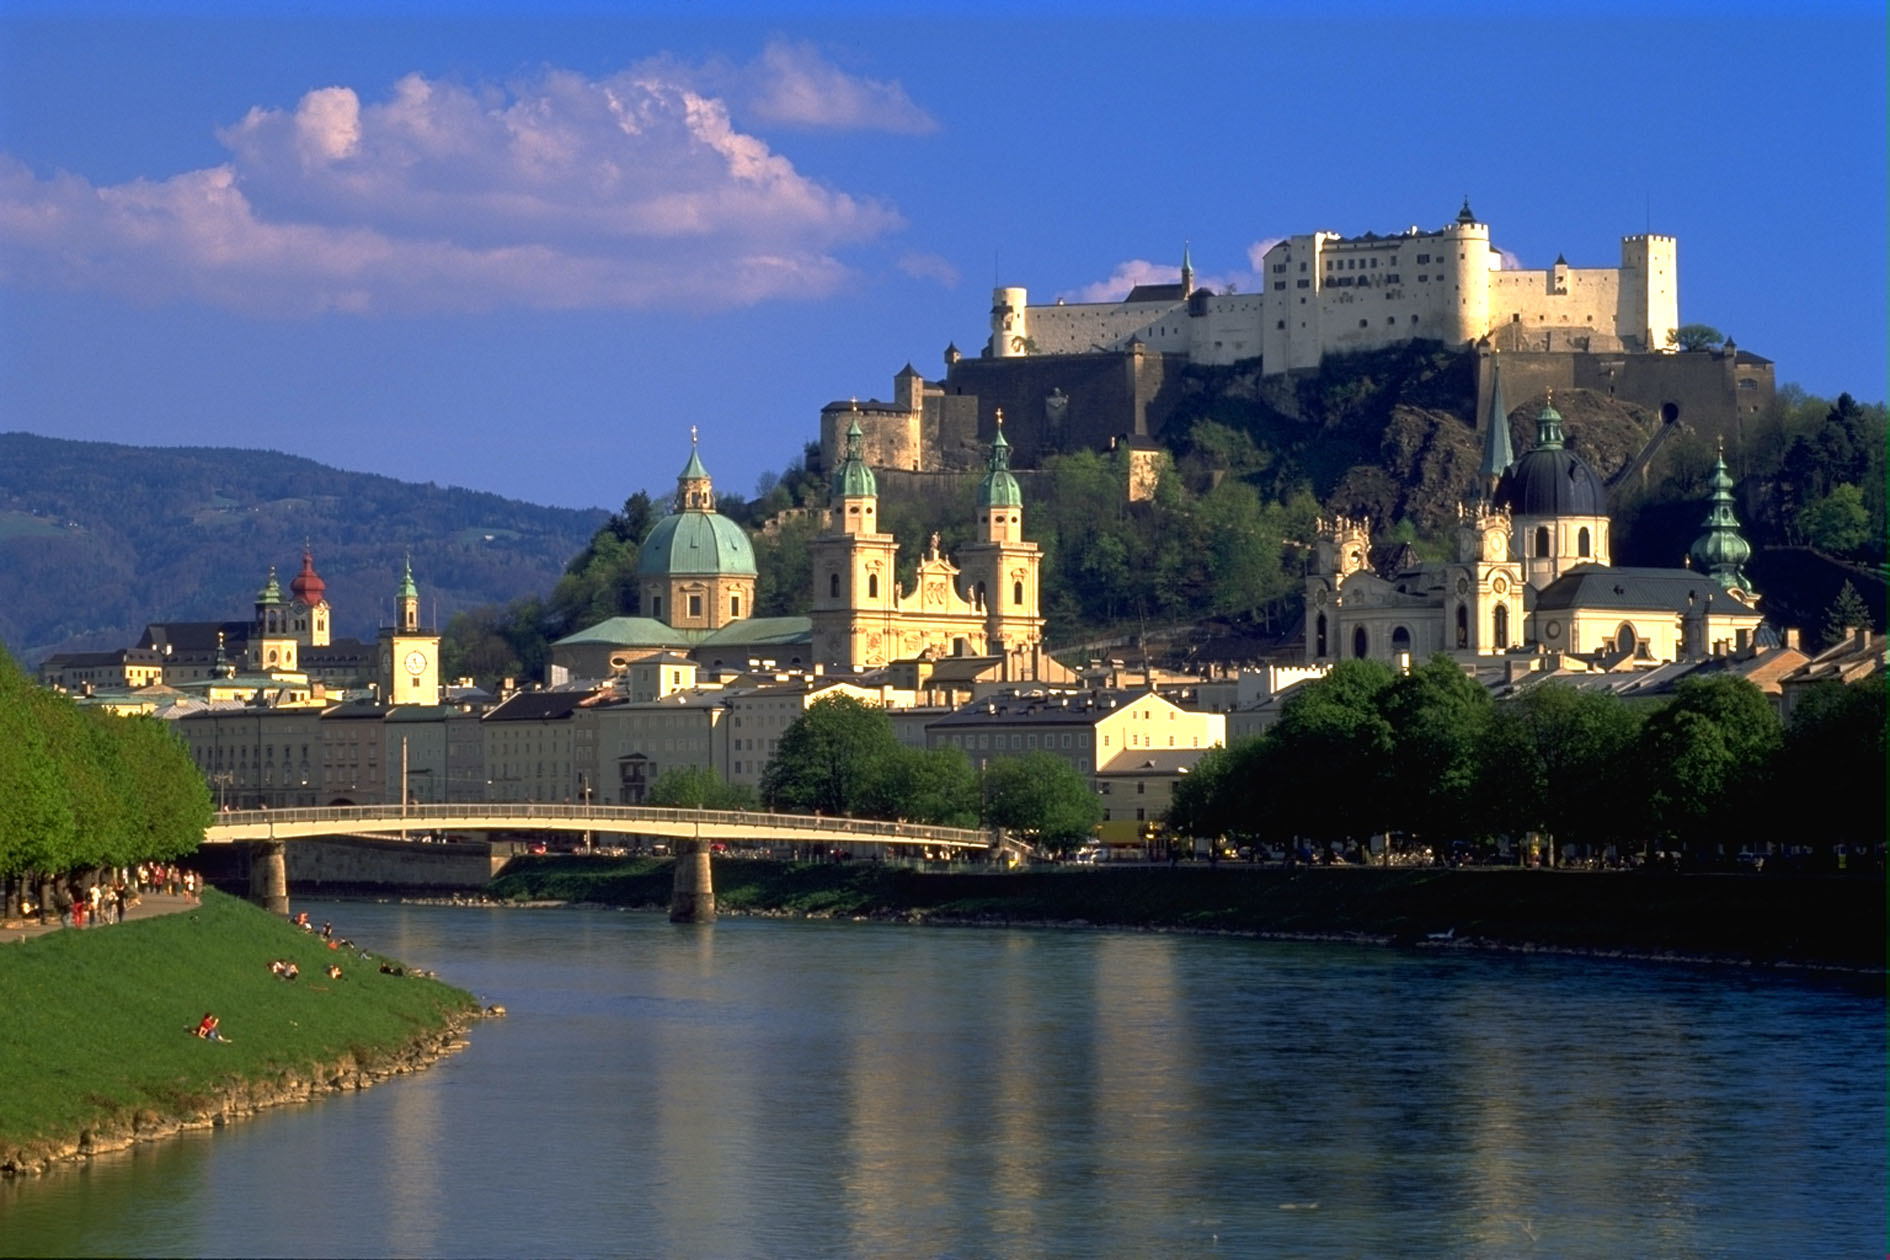 SALZBURG: VIEW FROM THE RIVER SALZACH